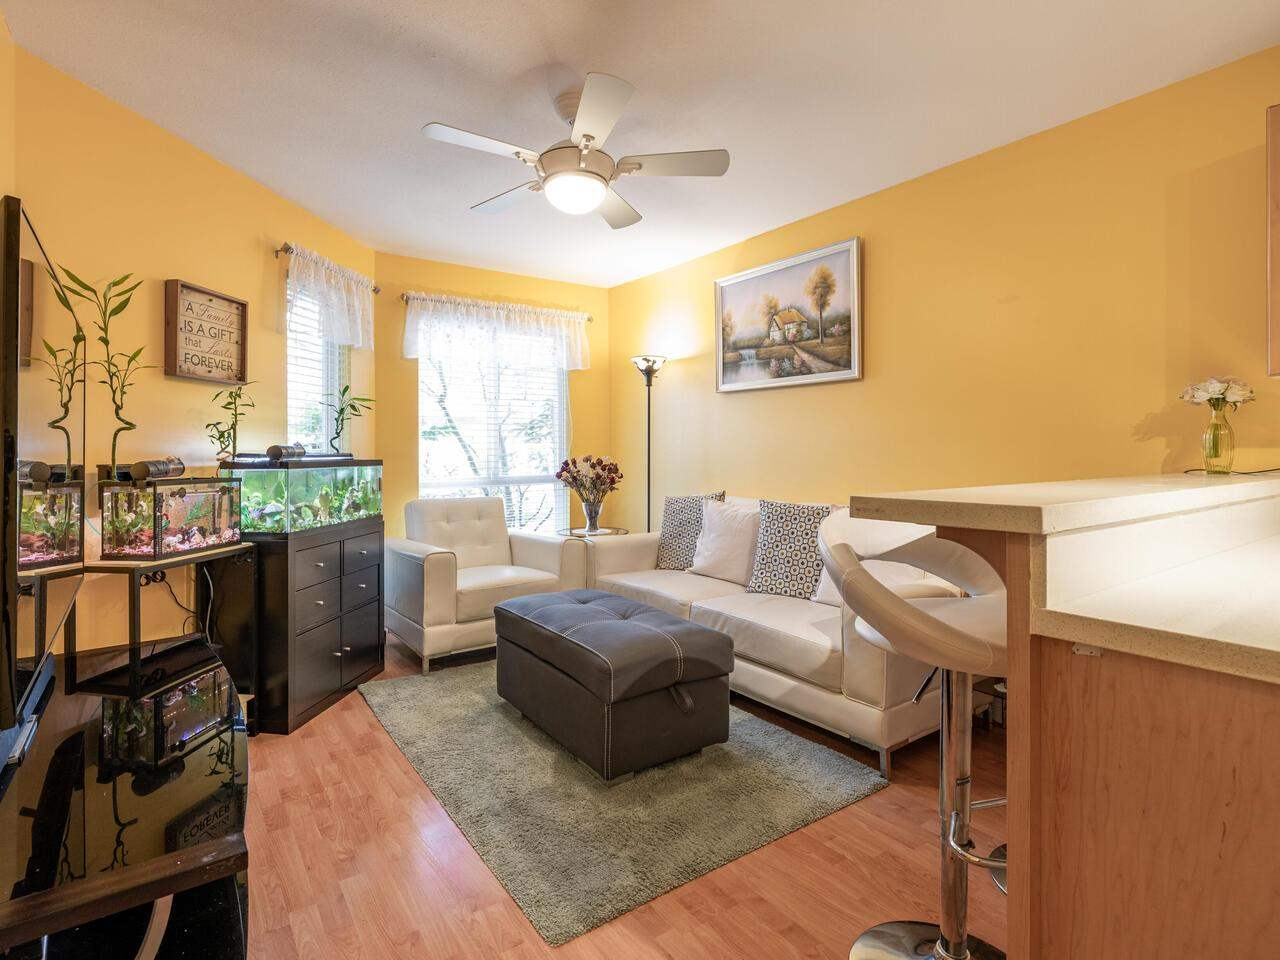 11 15875 84 AVE AVENUE - Fleetwood Tynehead Townhouse for sale, 3 Bedrooms (R2574652) - #2